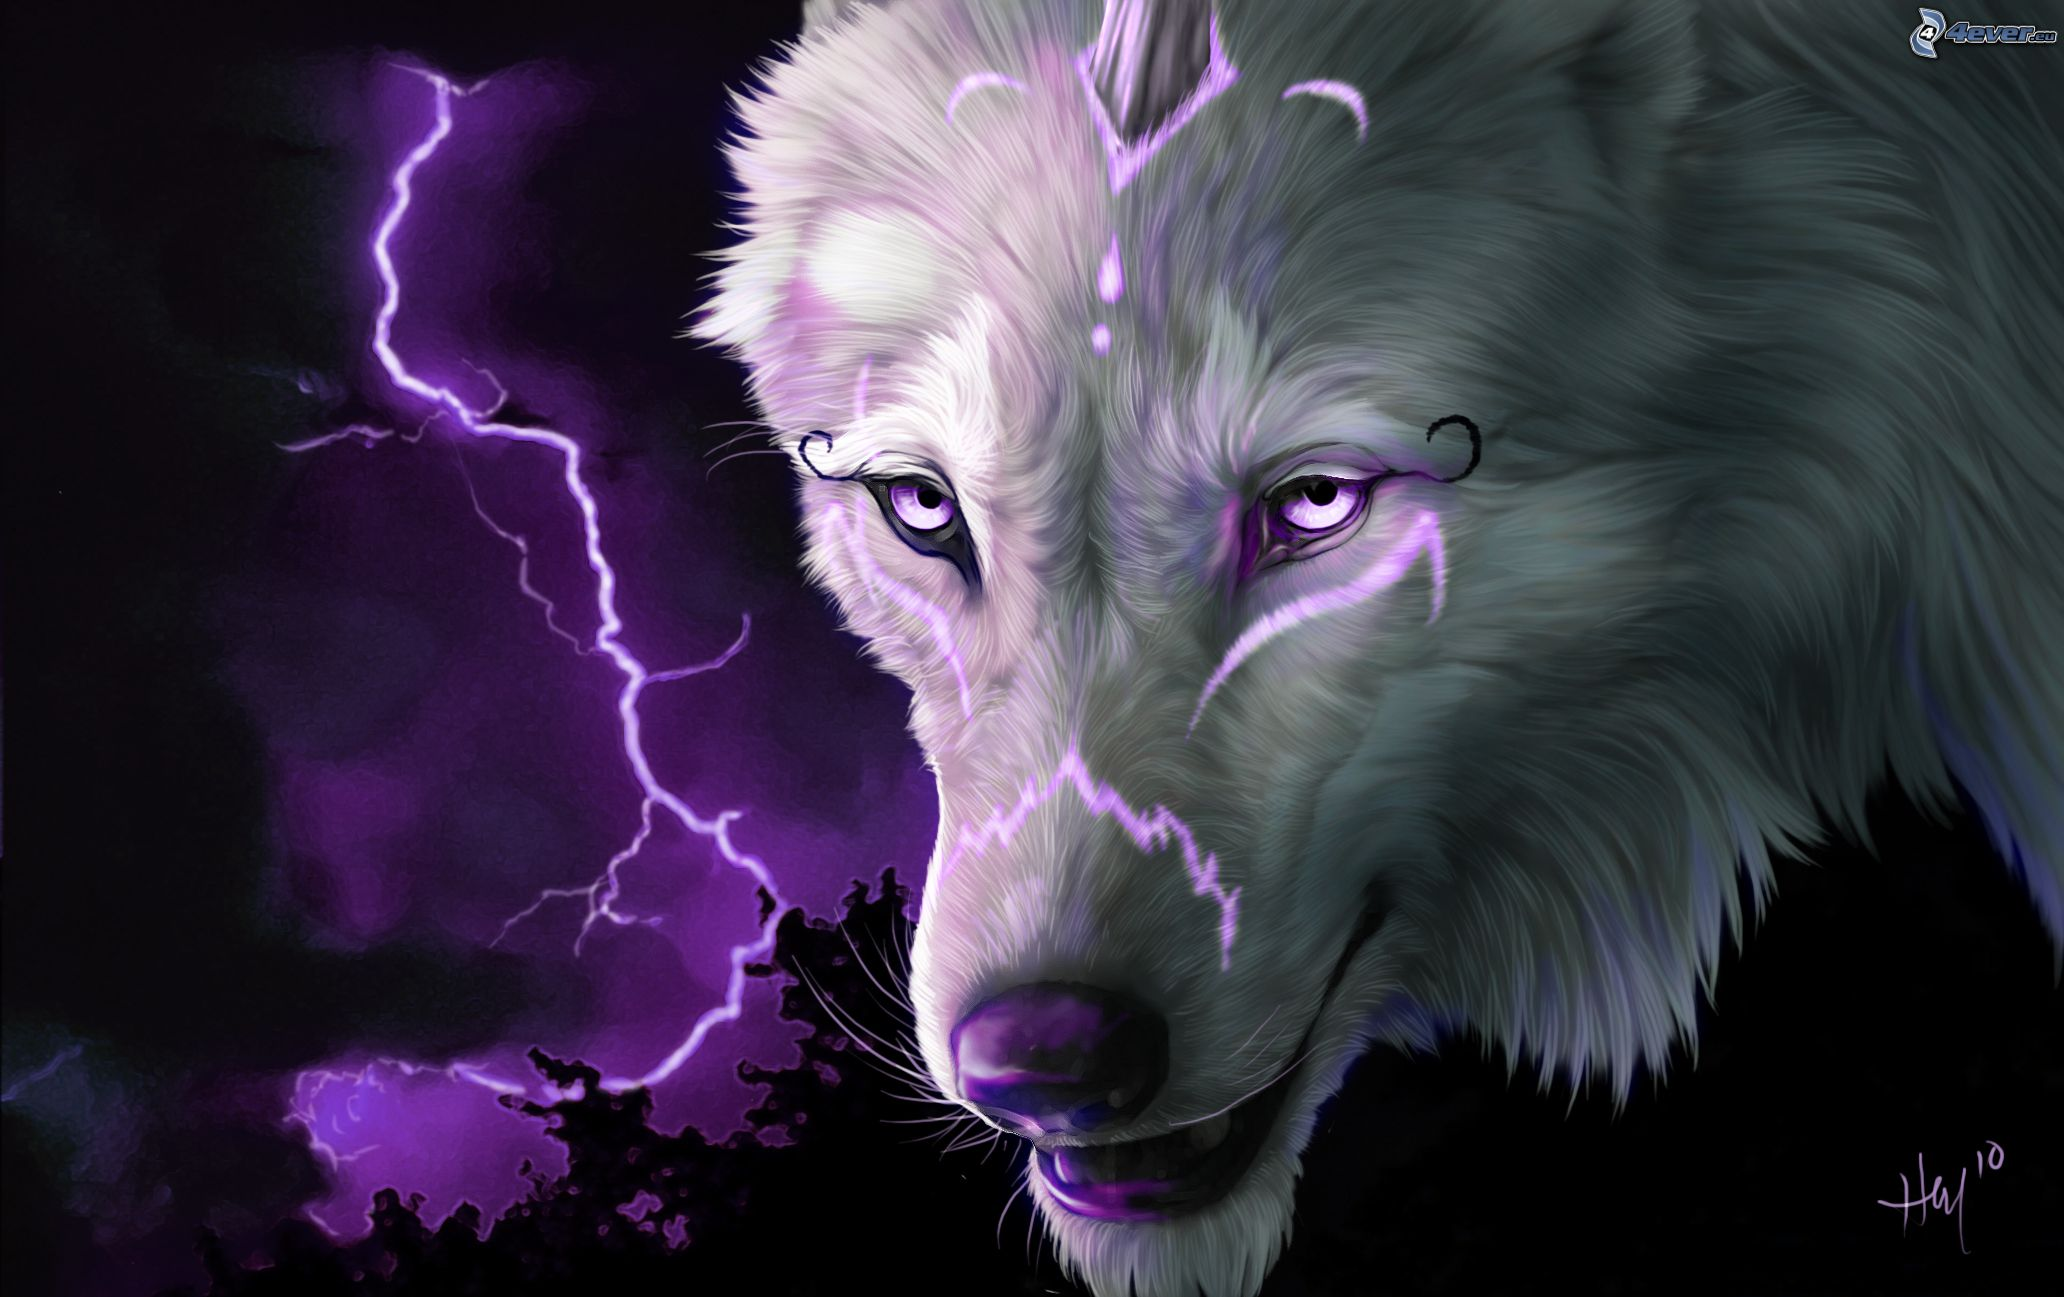 Magic wolf wallpapers - photo#38